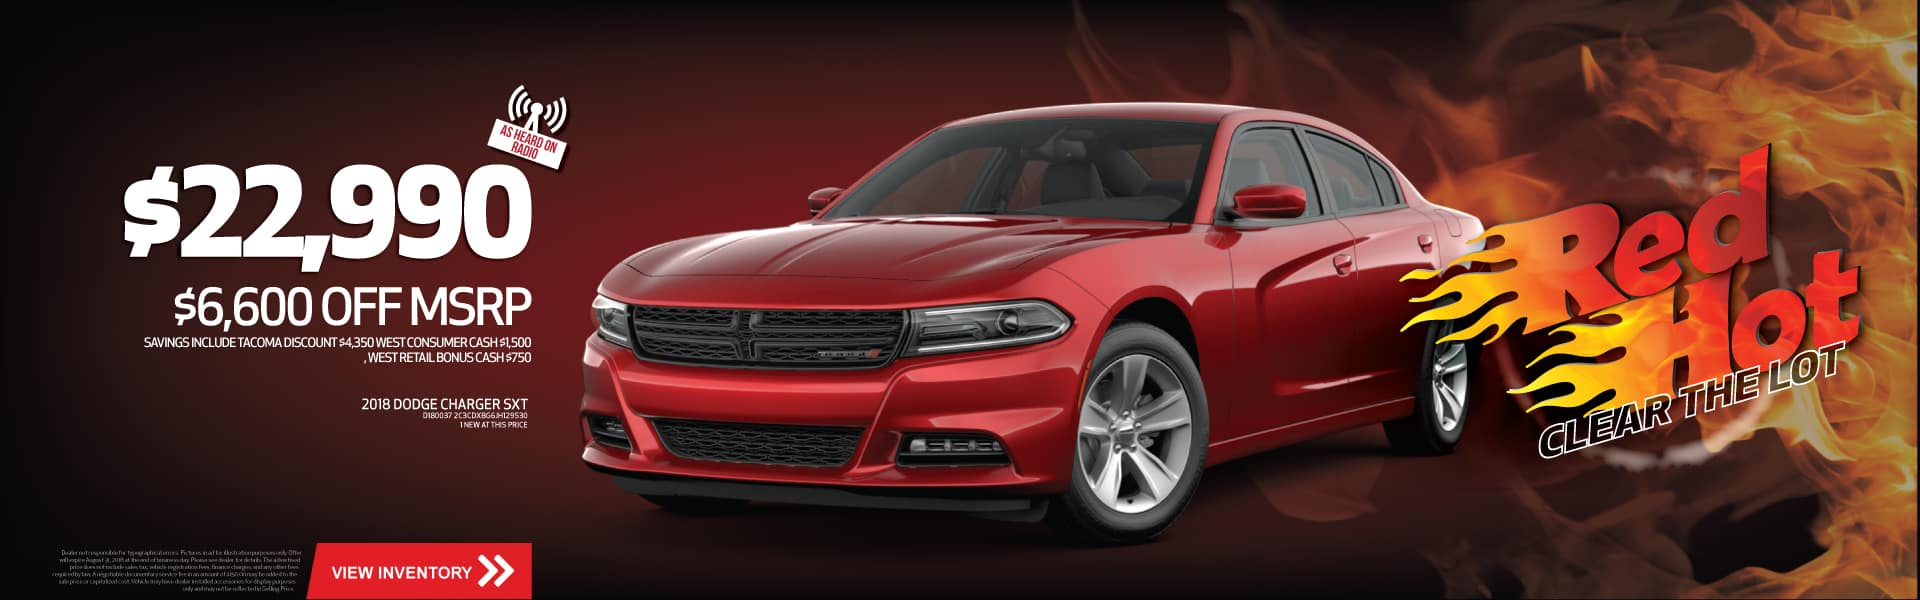 Dodge Dealer in Tacoma, WA | Tacoma Dodge Chrysler Jeep Ram